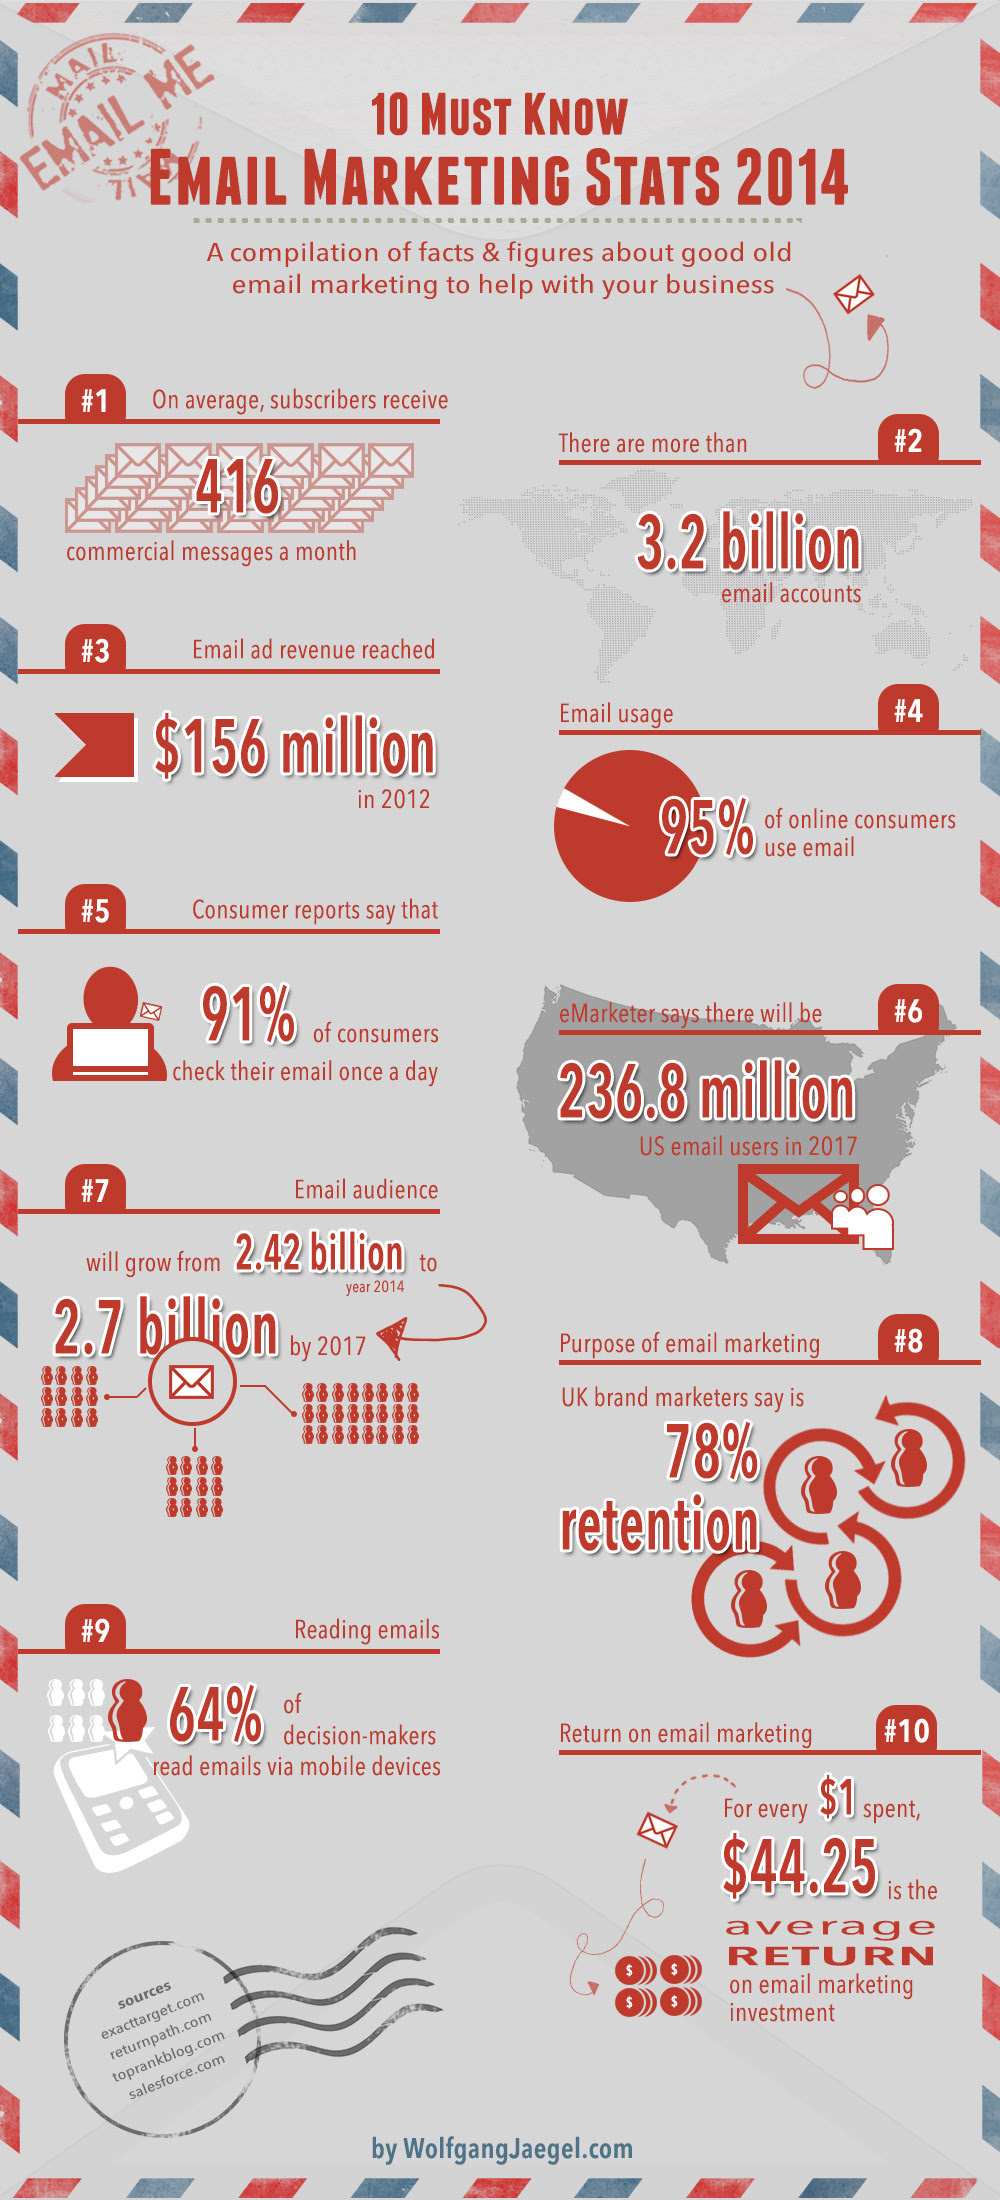 Infographic: 10 Must Know Email Marketing Stats 2014 #EmailMarketing #Marketing #Infographic